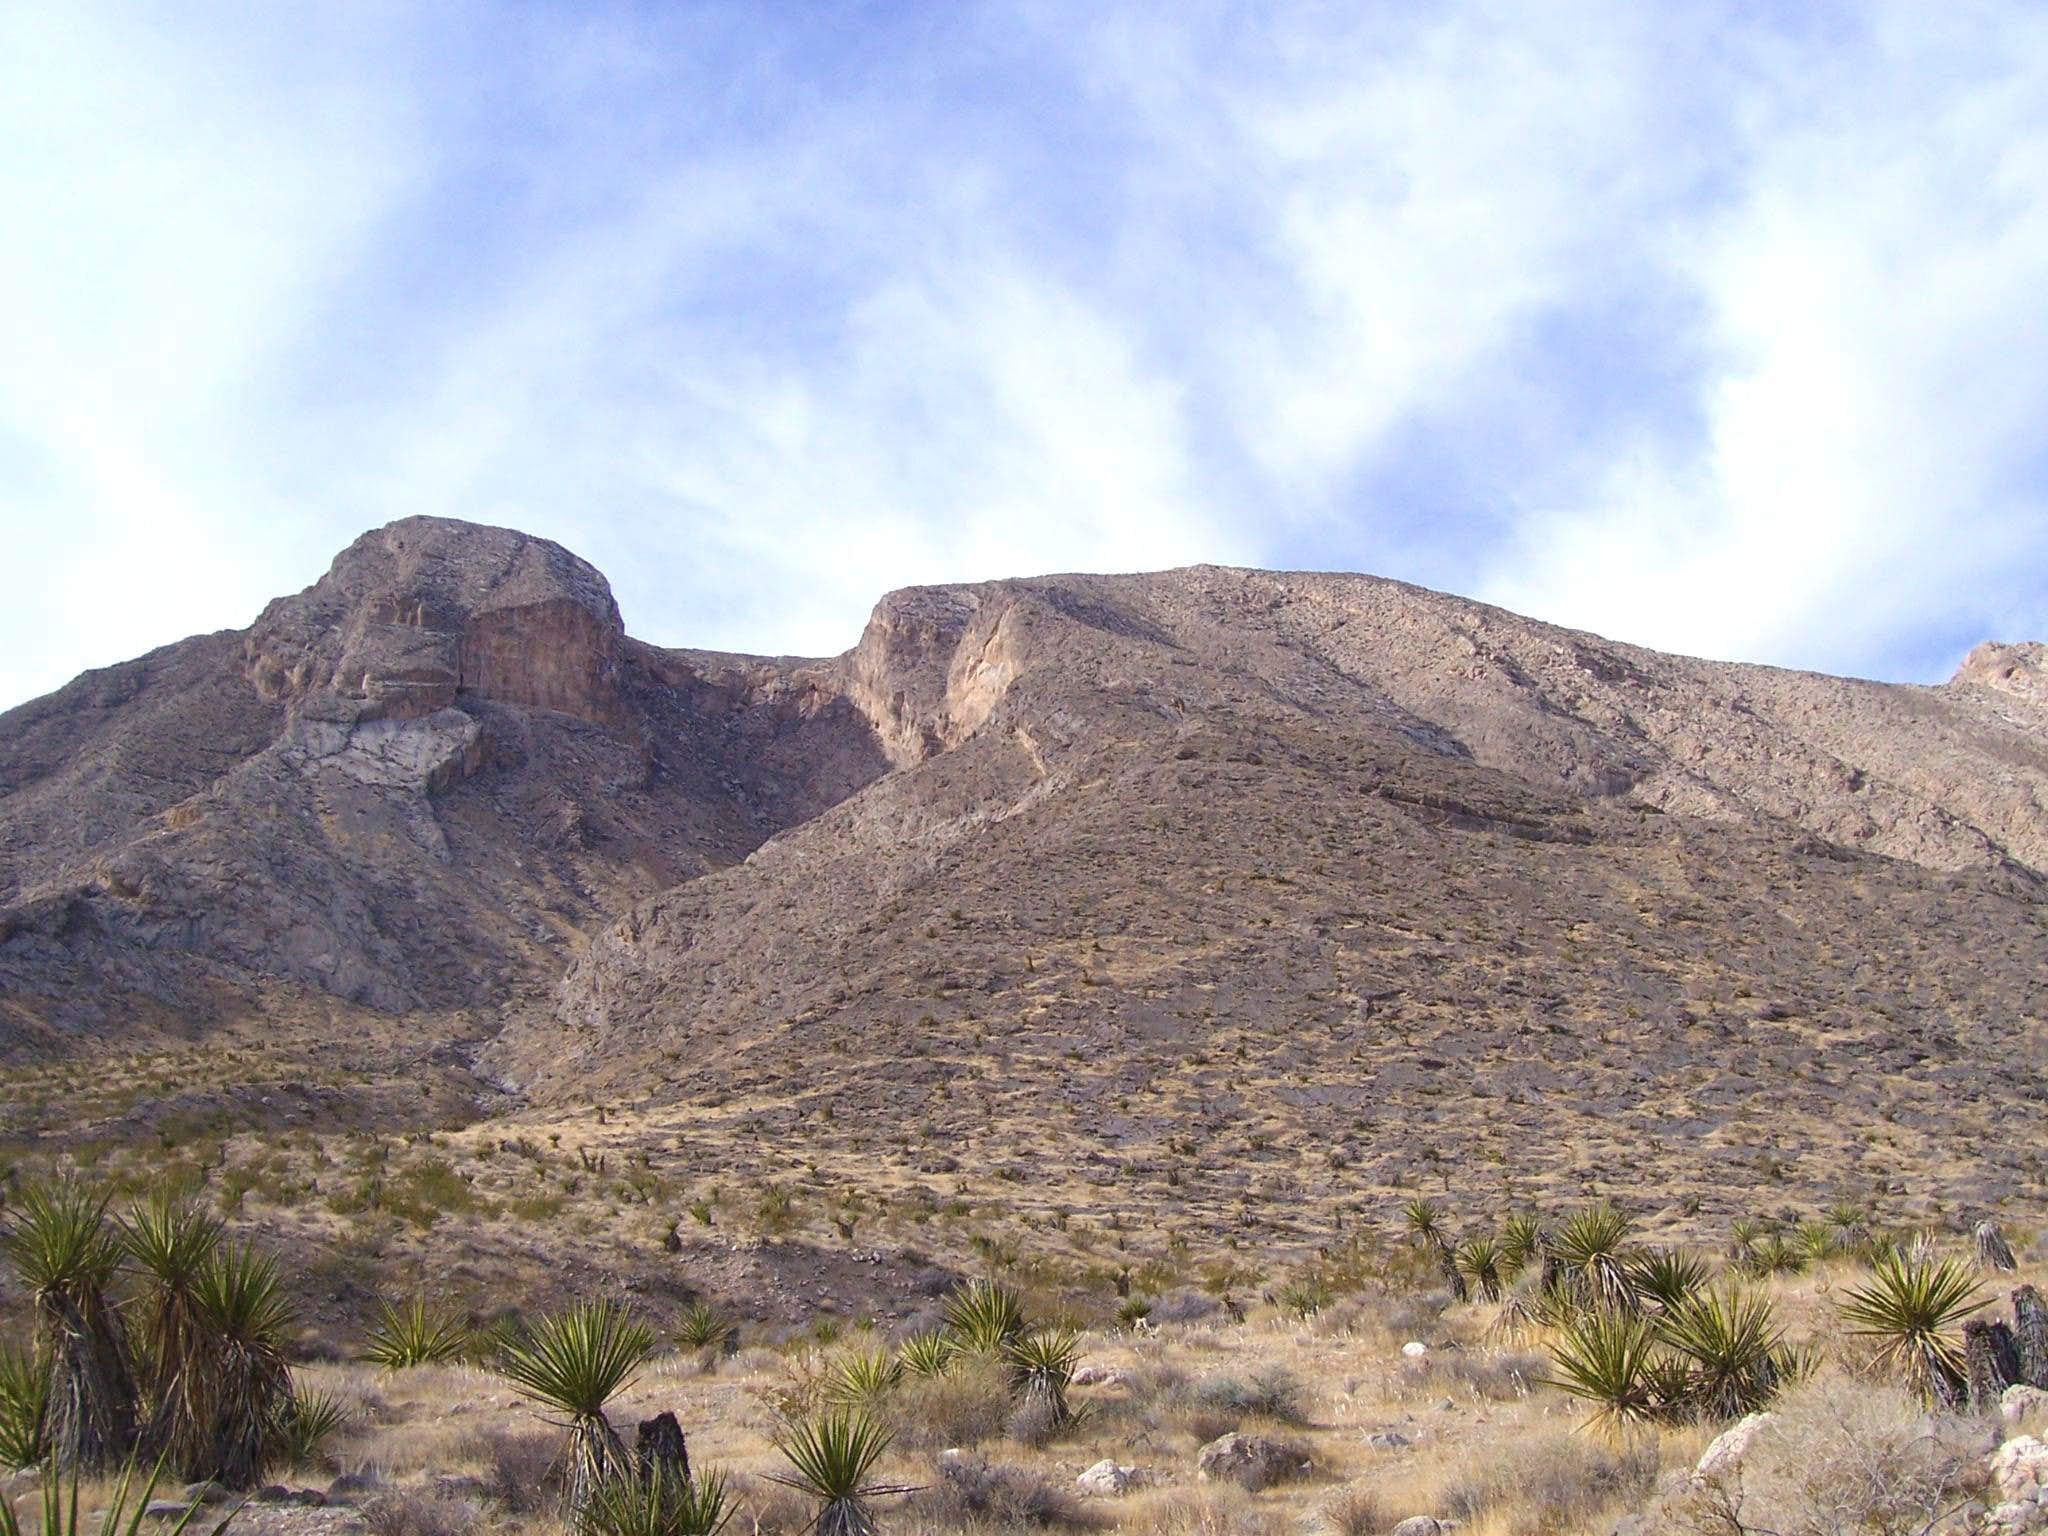 Summerlin Peak